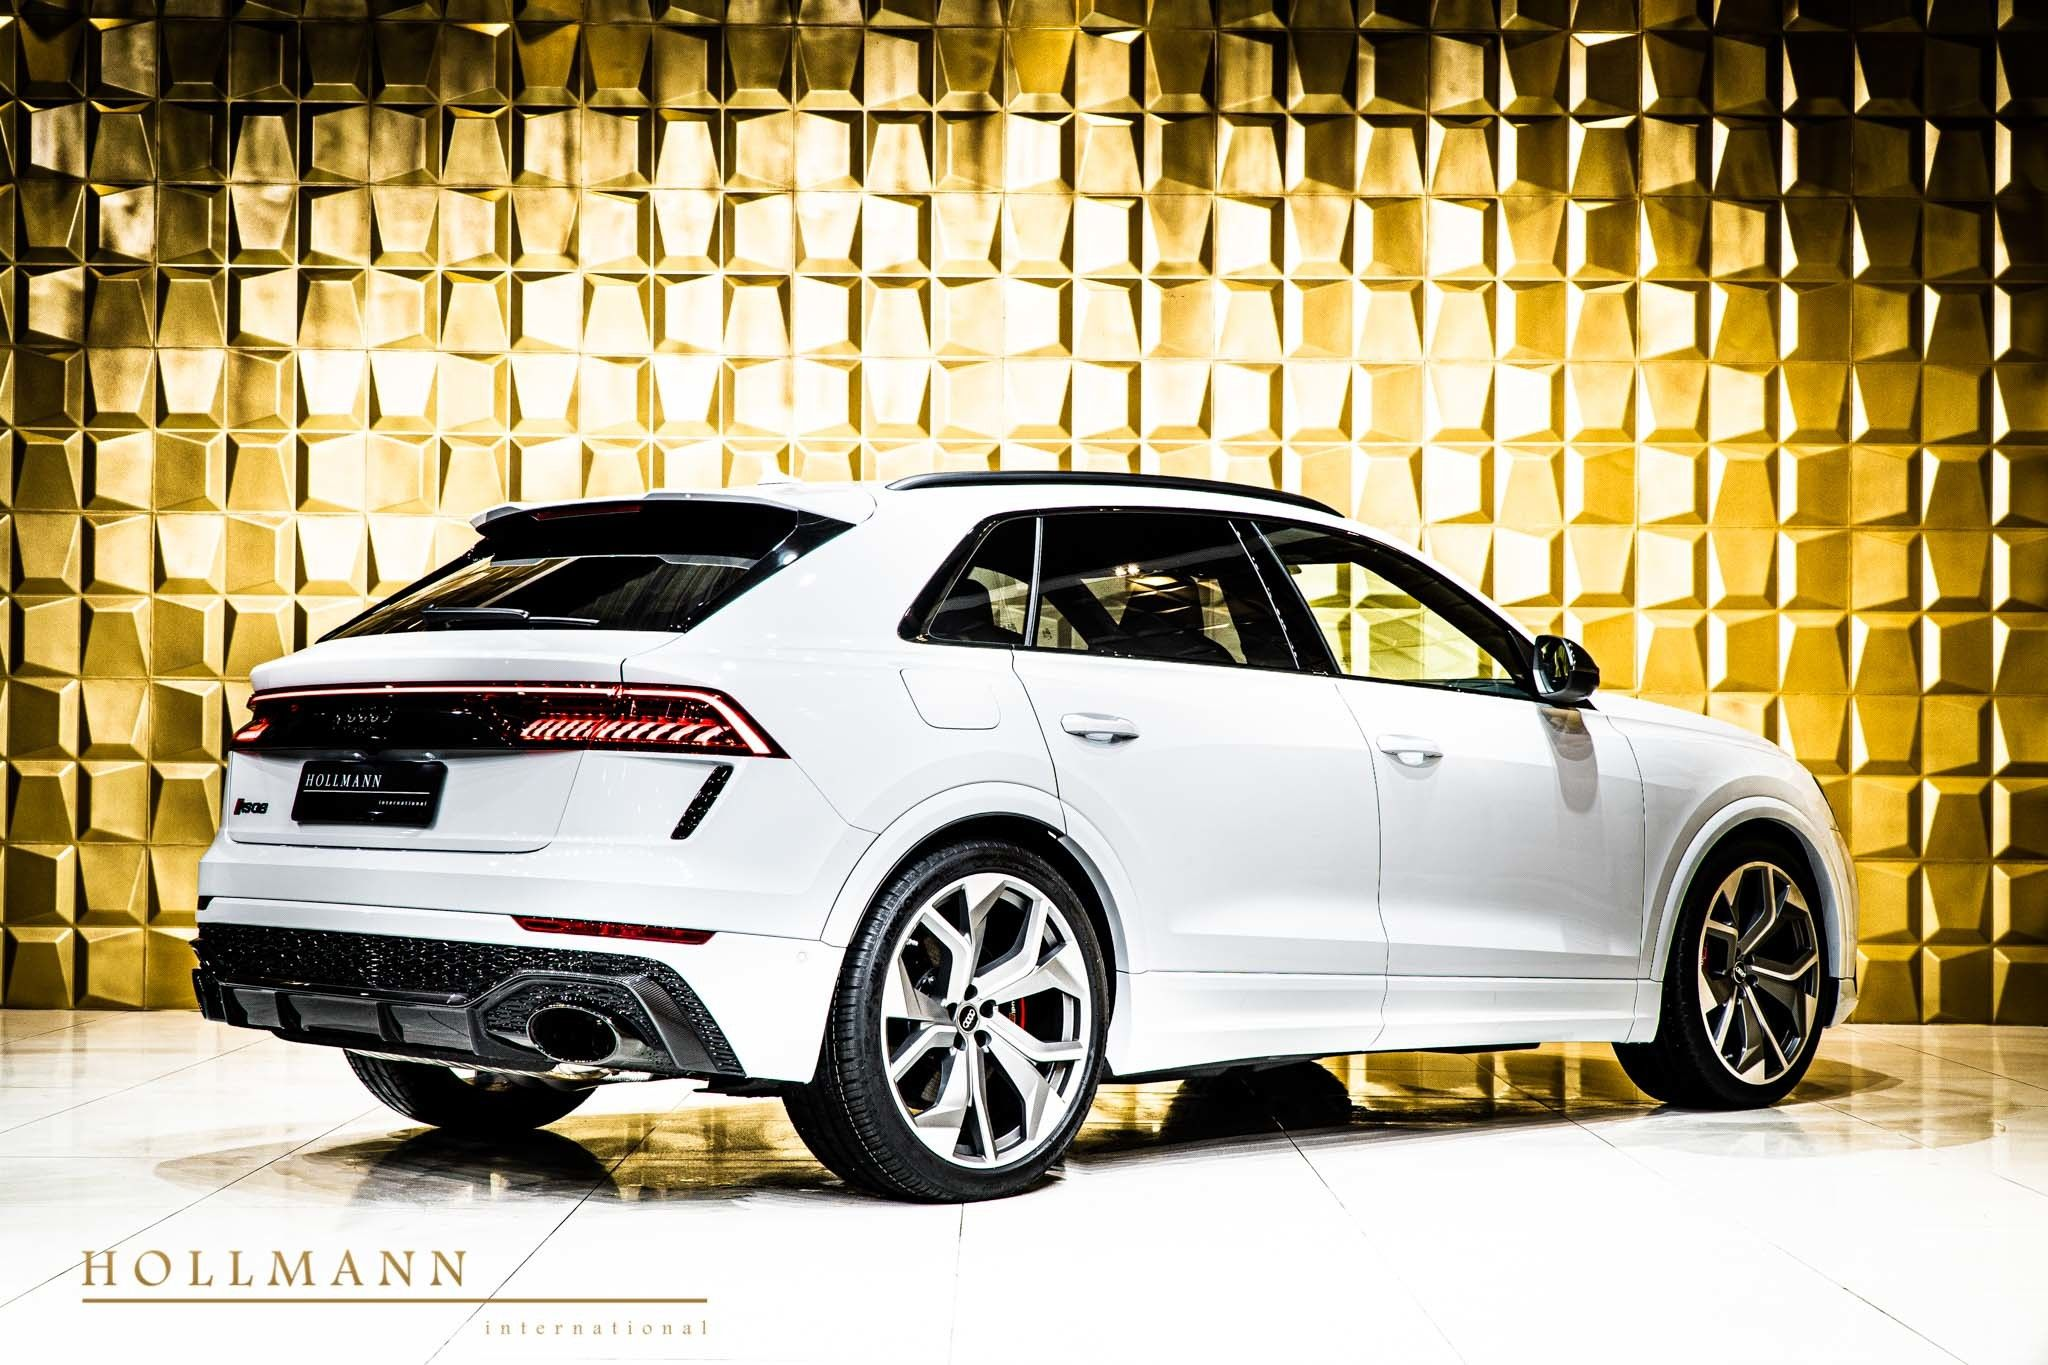 Audi Rs Q8 Hollmann International Germany For Sale On Luxurypulse In 2020 Audi Rs Audi Luxury Suv